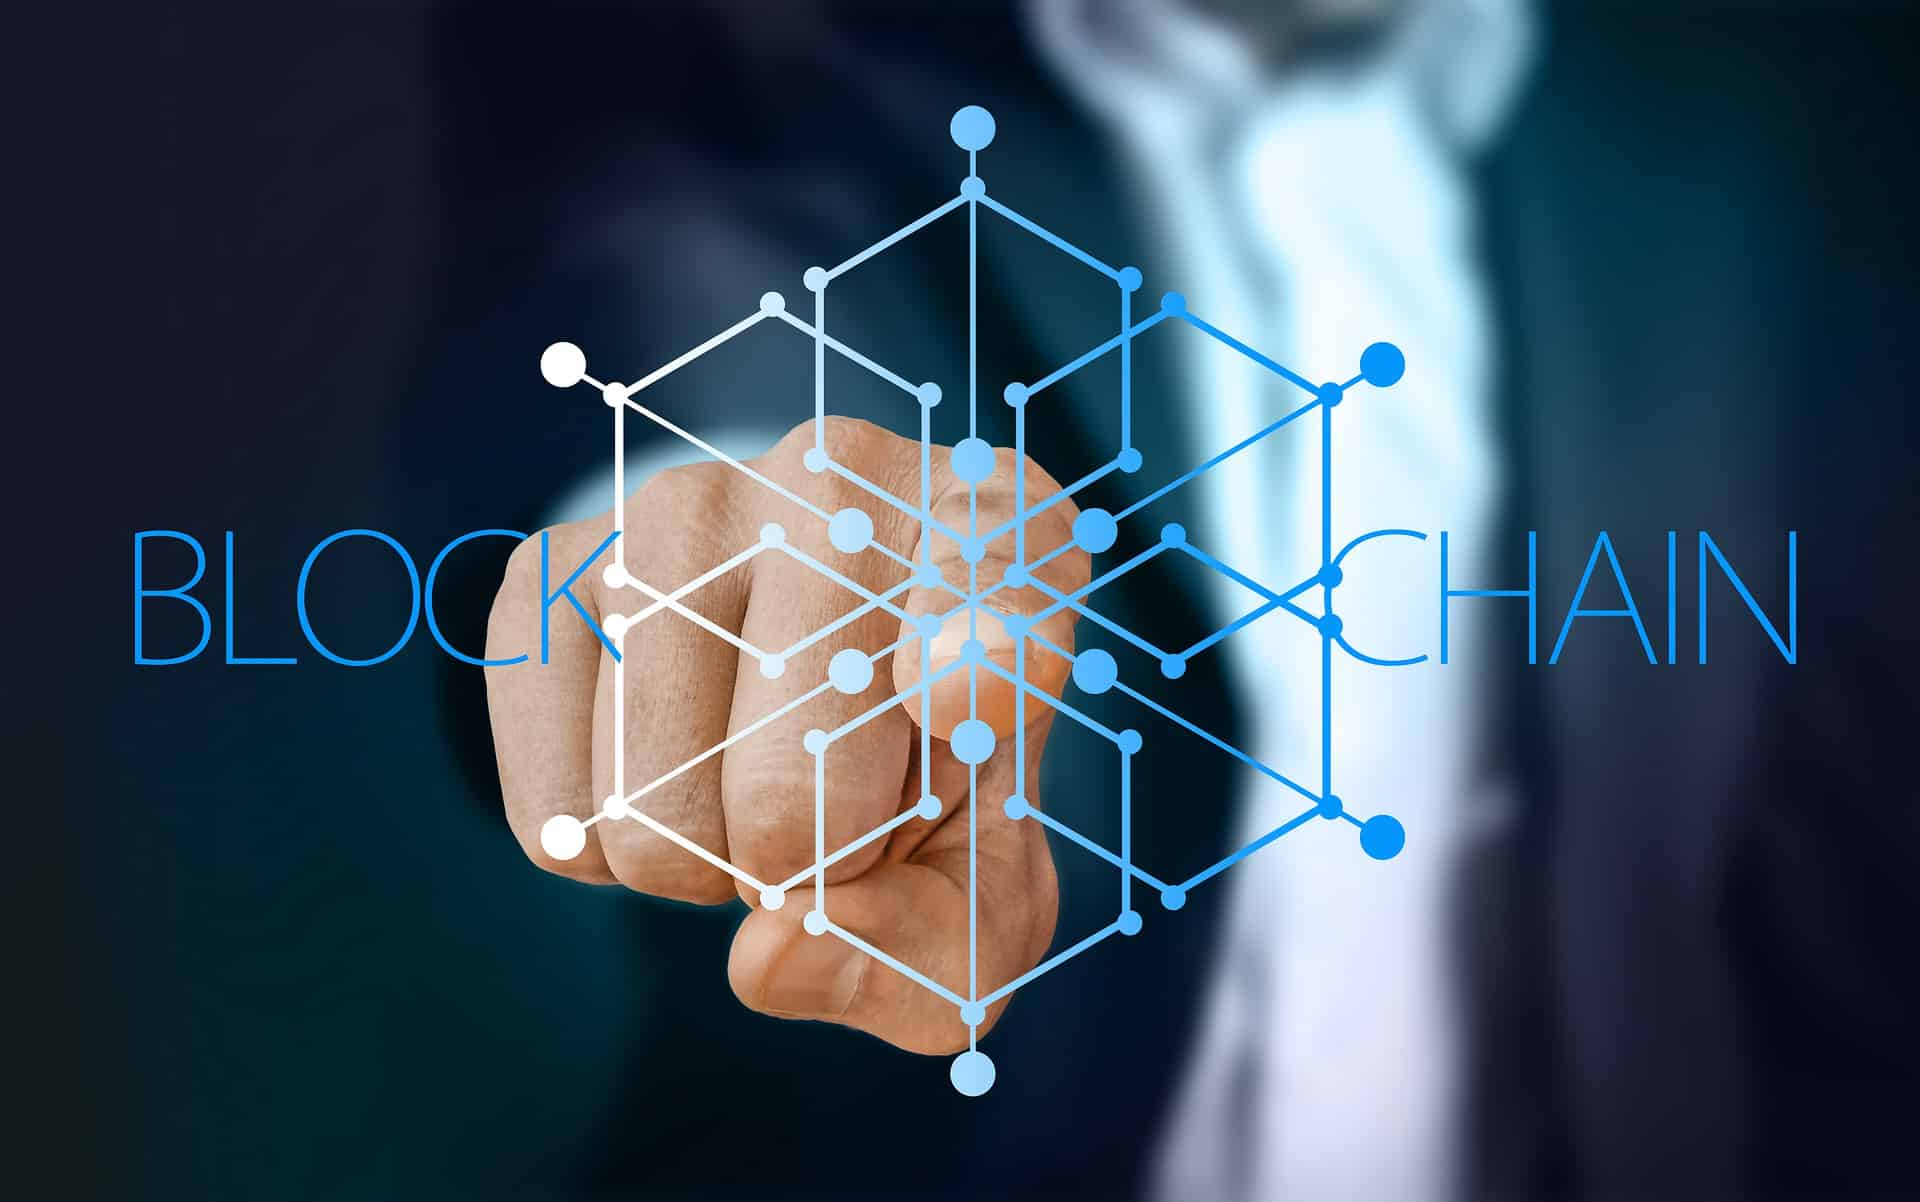 Pro-Blockchain Figure Named as Minister of Science